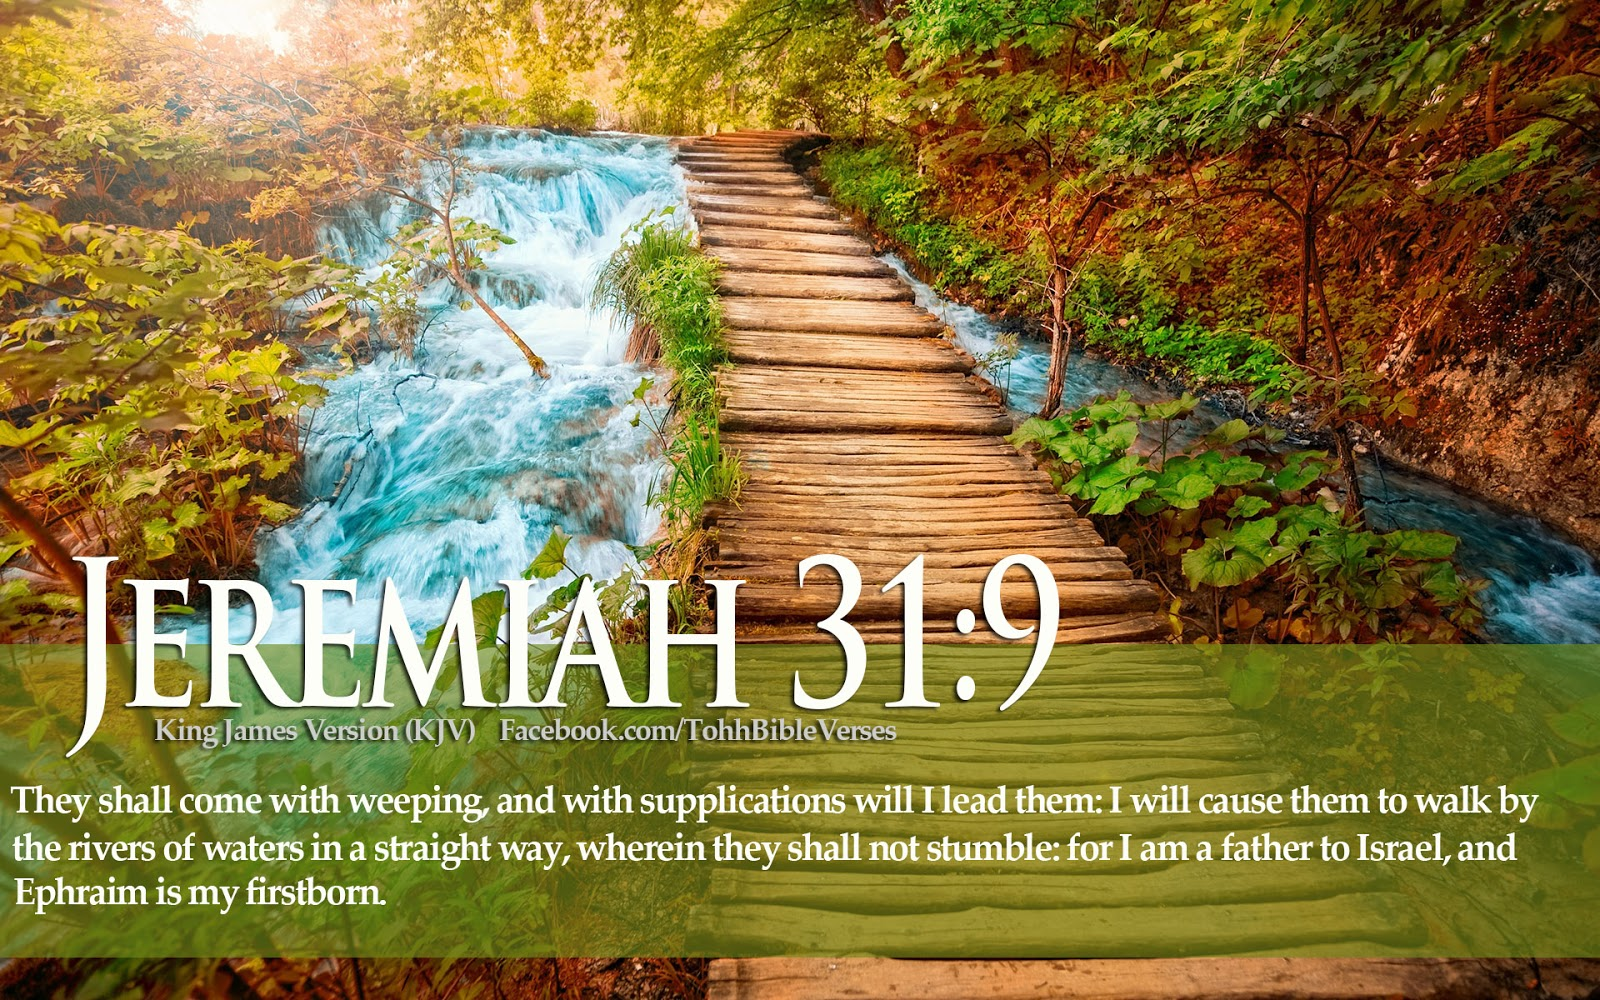 1600x1000px bible scriptures wallpaper wallpapersafari greetings card wallpapers christian images with bible verses 1600x1000 m4hsunfo